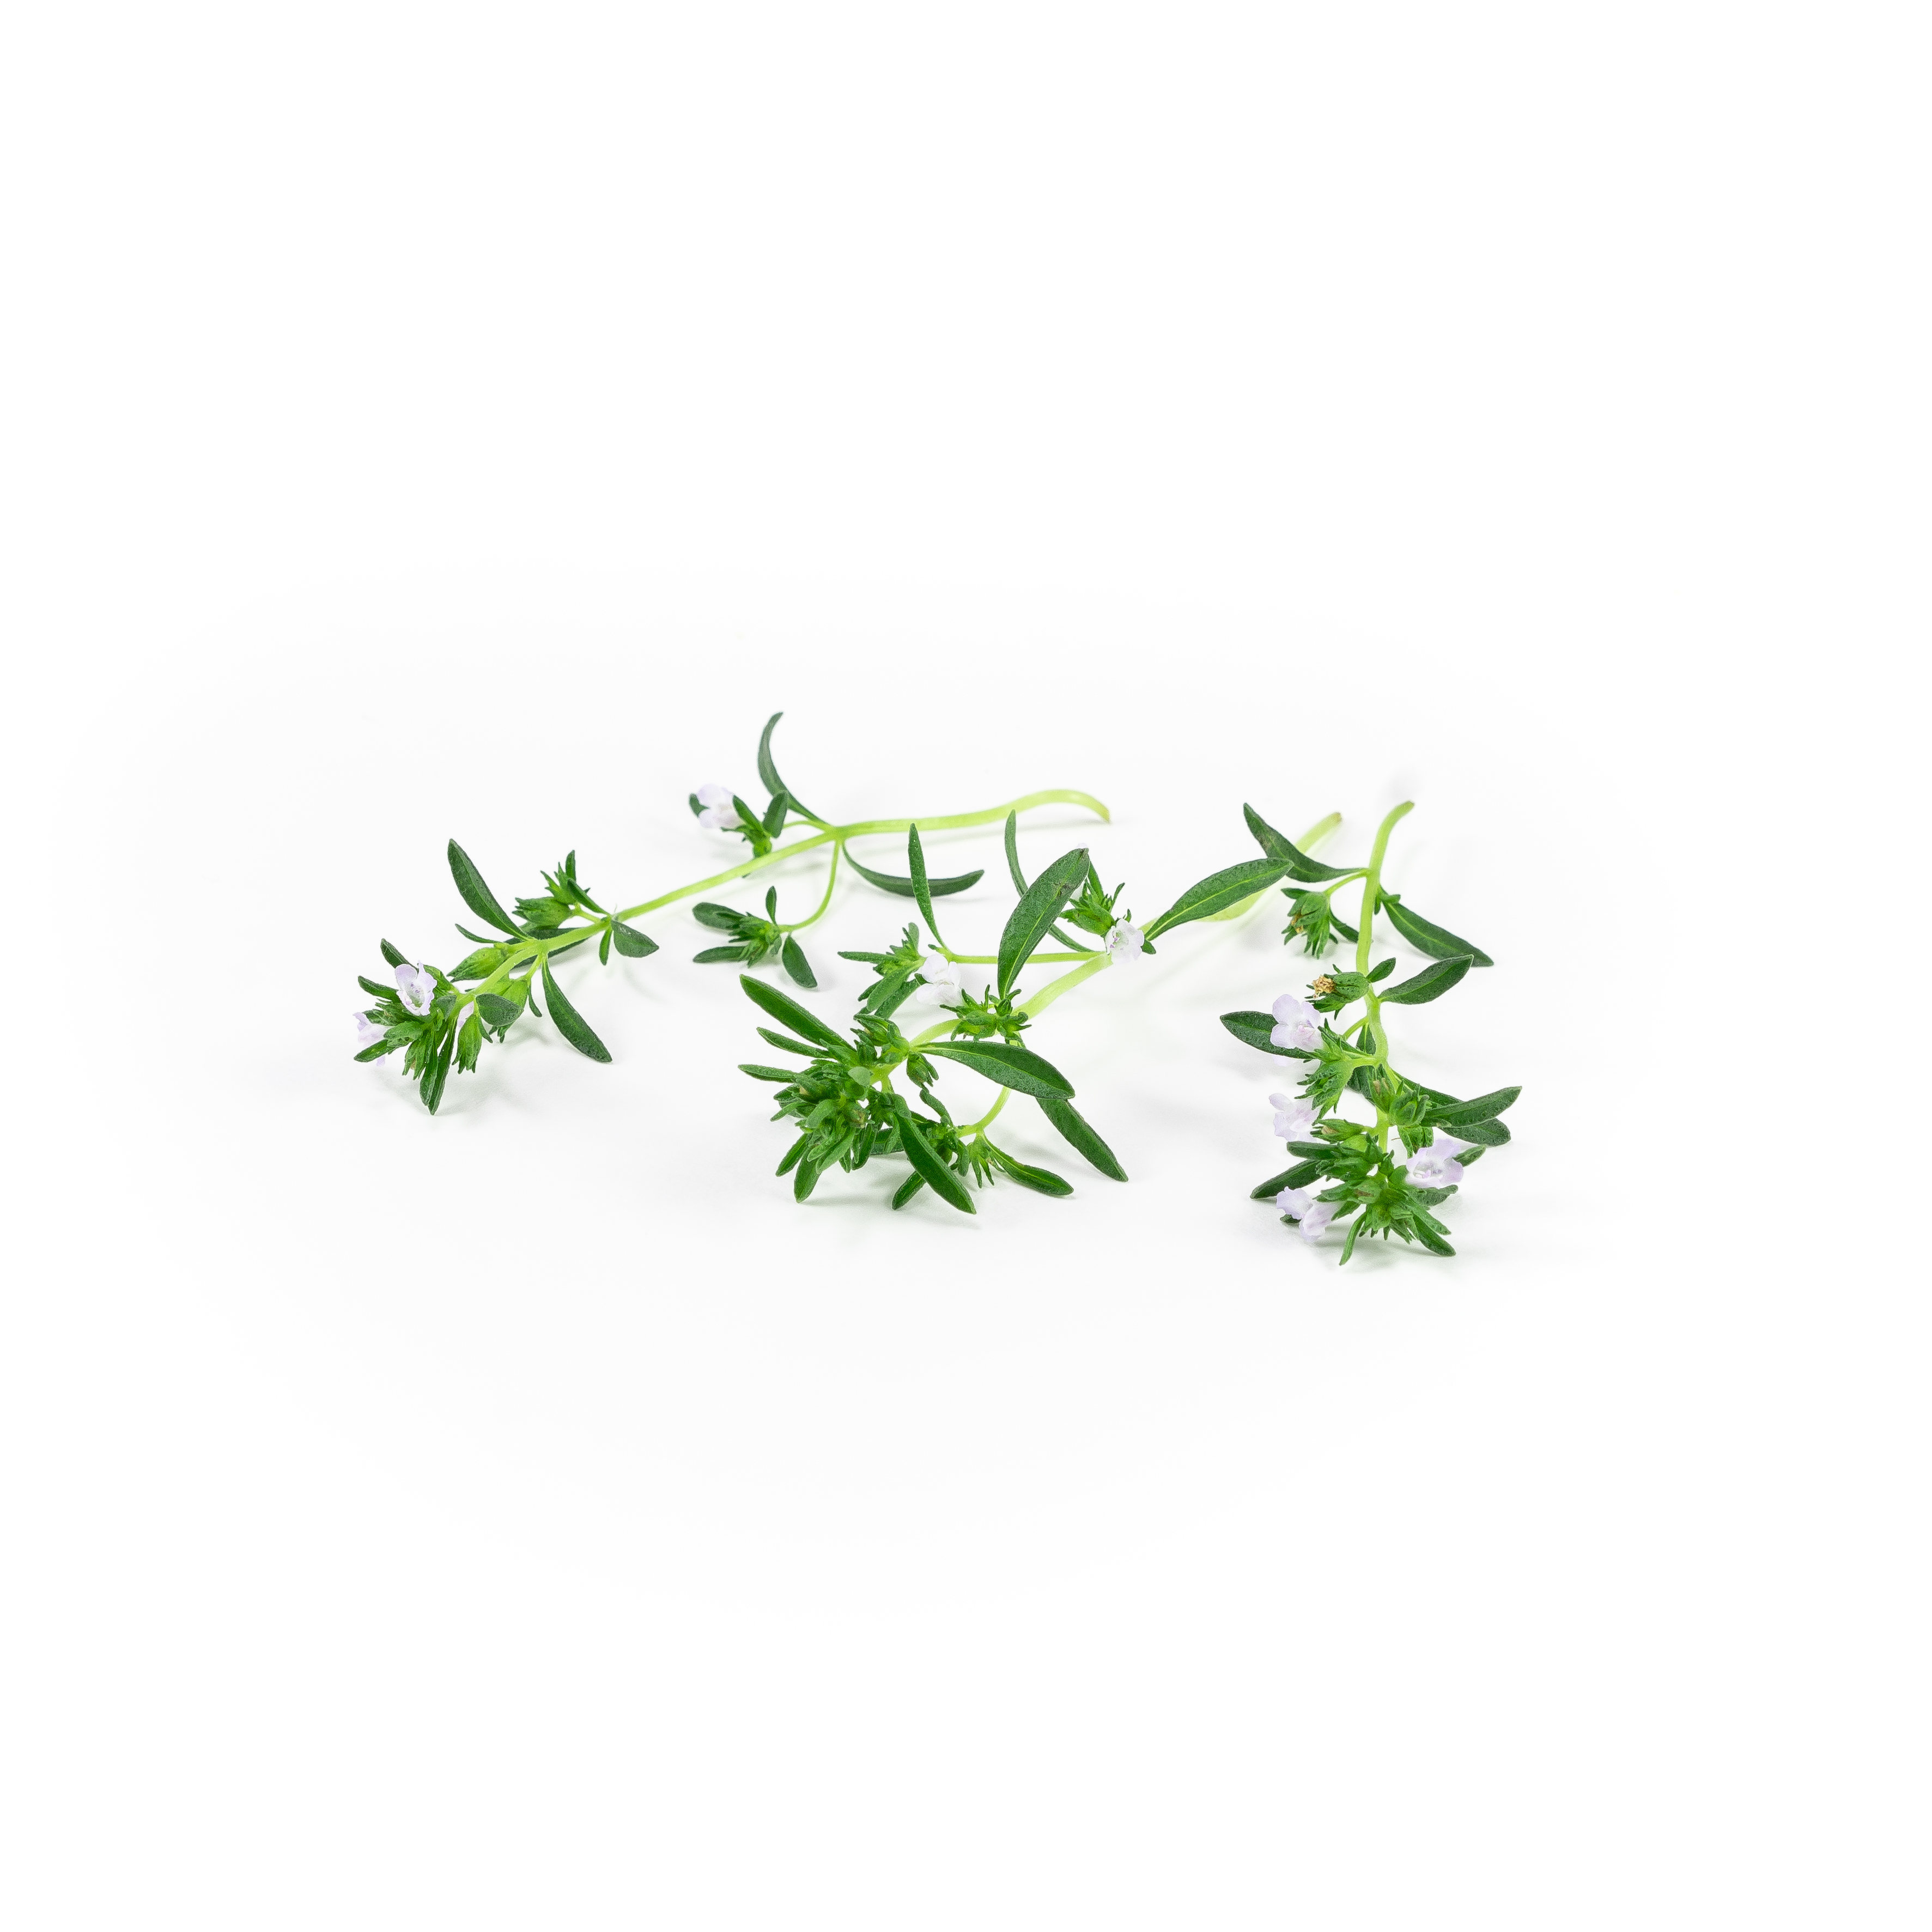 Strong peppery, thyme-like flavor with fine leaves and small flowers